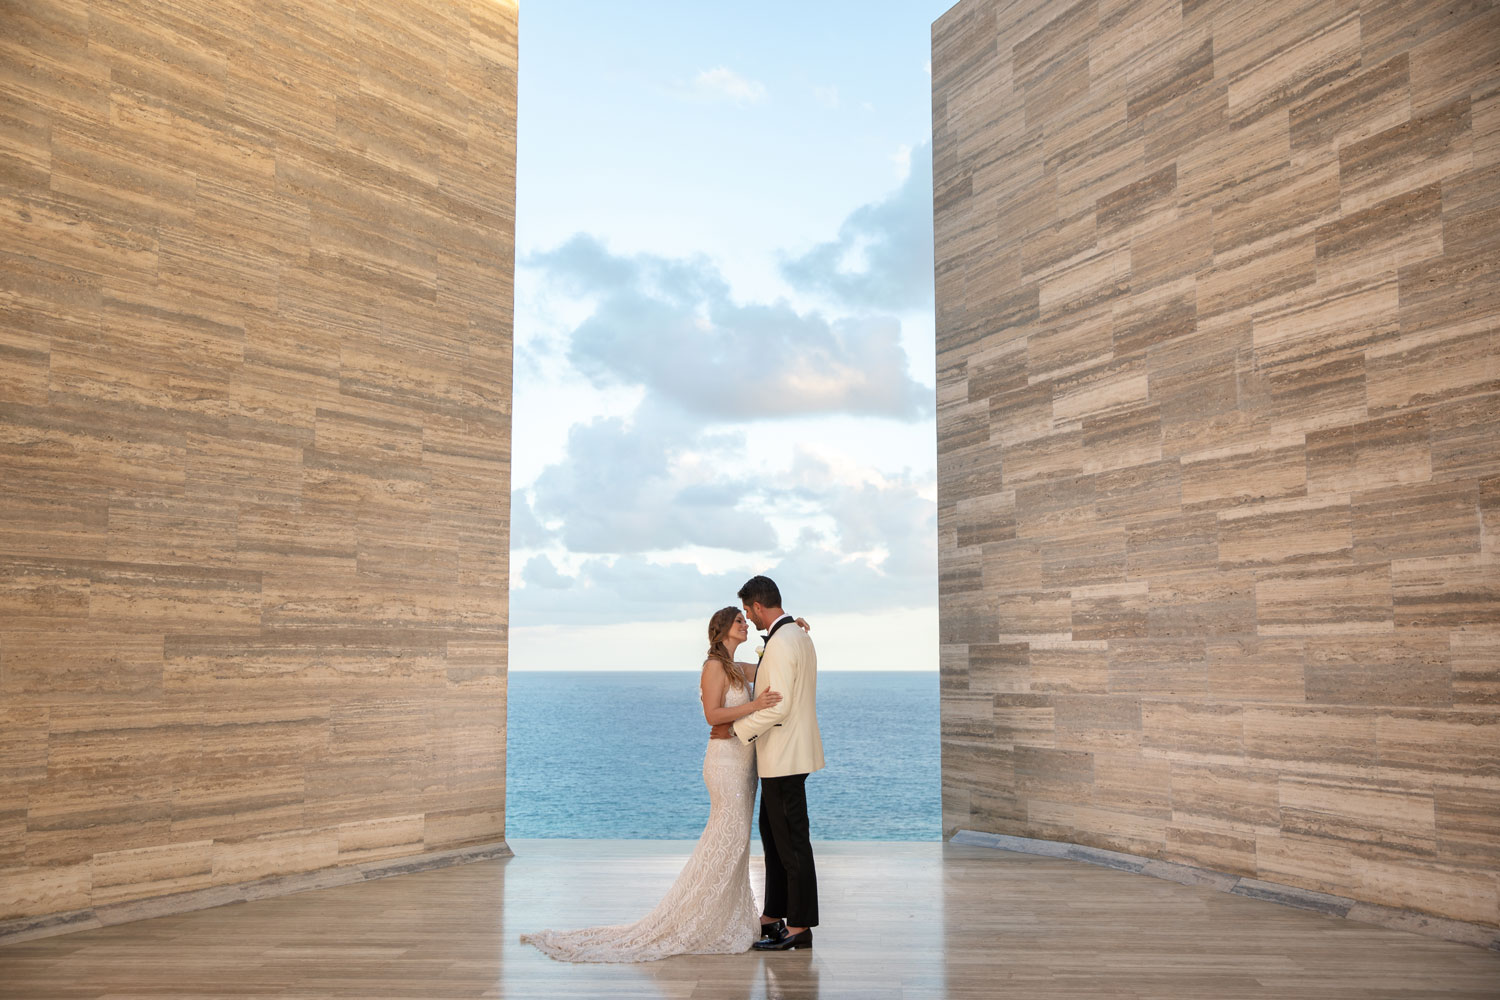 bride and groom between two vast walls with opening overlooking ocean